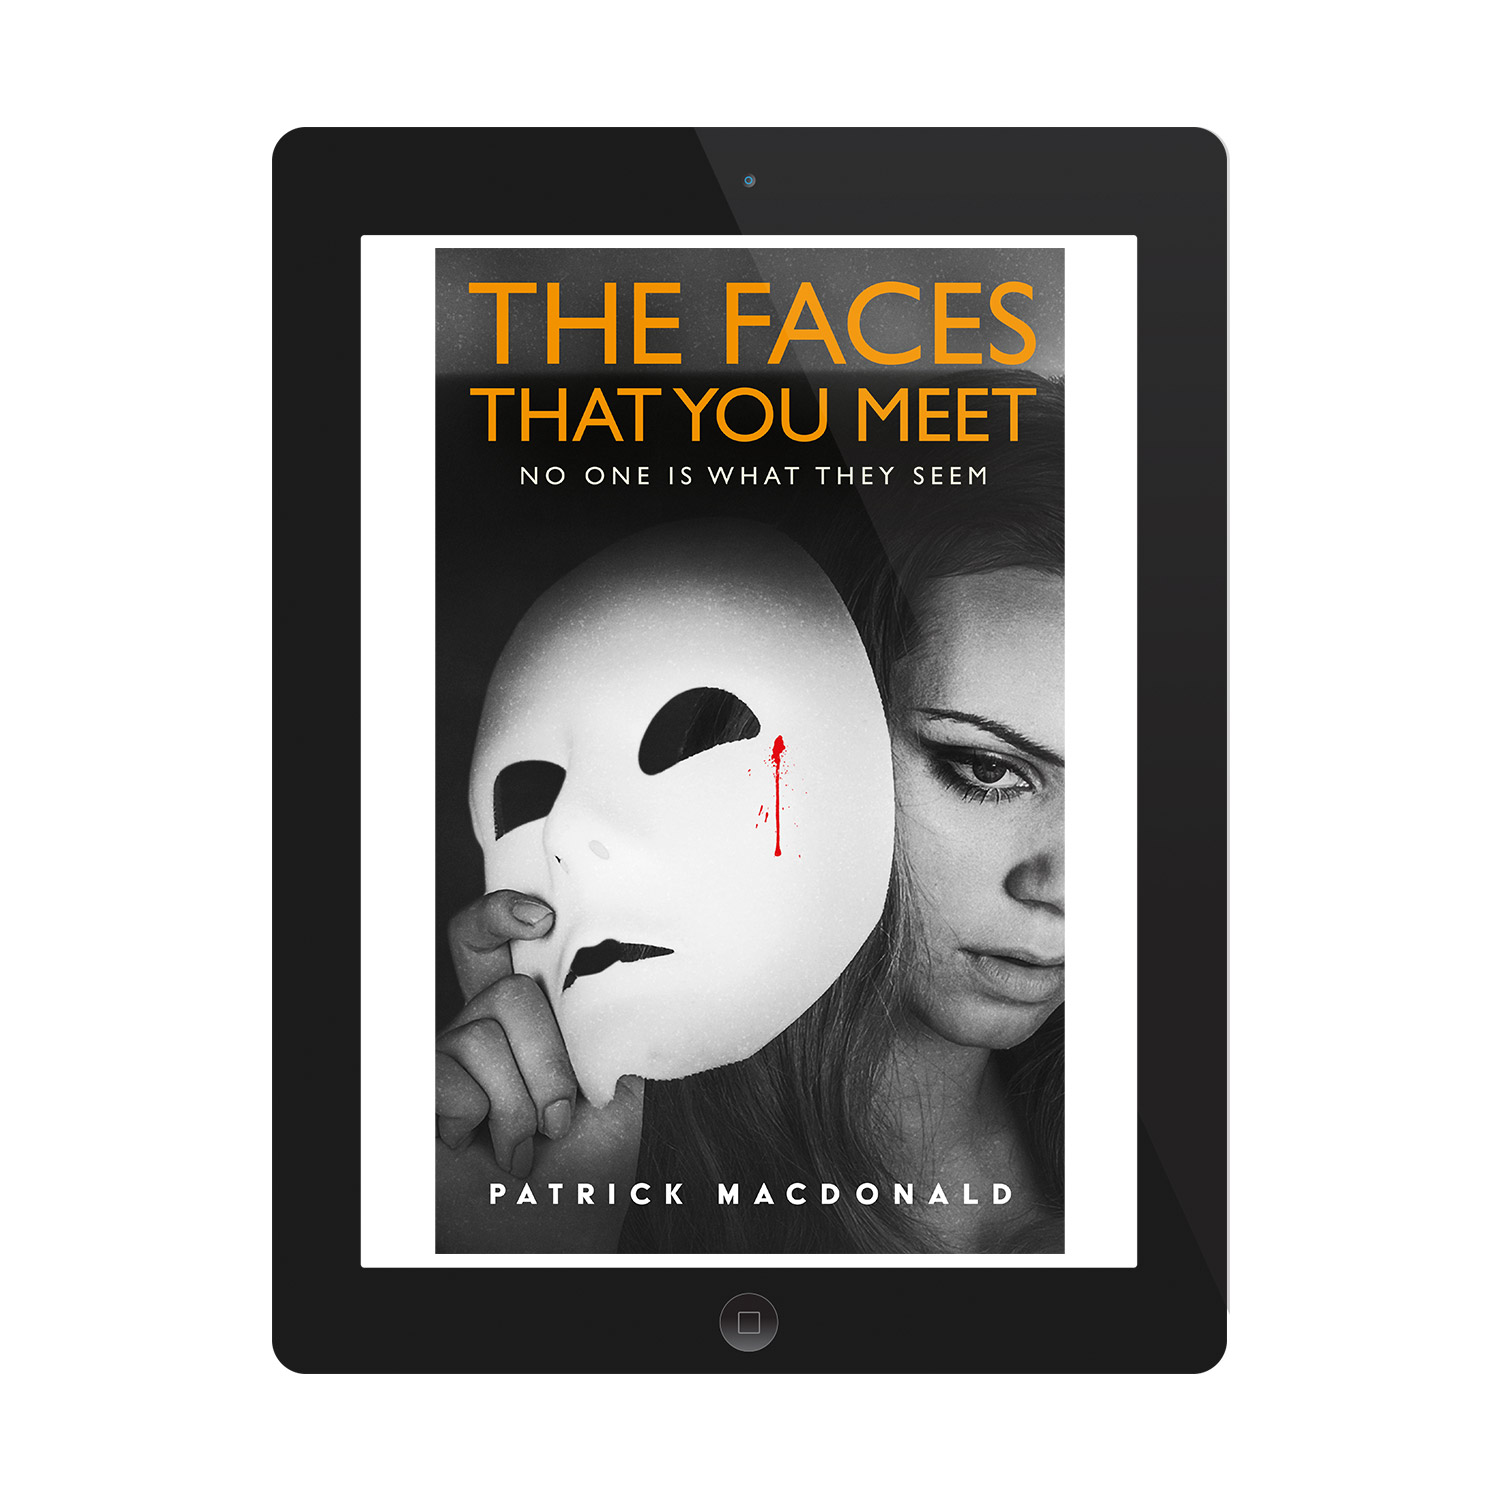 'The Faces That You Meet' is a dark, twisting thriller by Patrick Macdonald. The book cover design and interior formatting are by Mark Thomas. To learn more about what Mark could do for your book, please visit coverness.com.